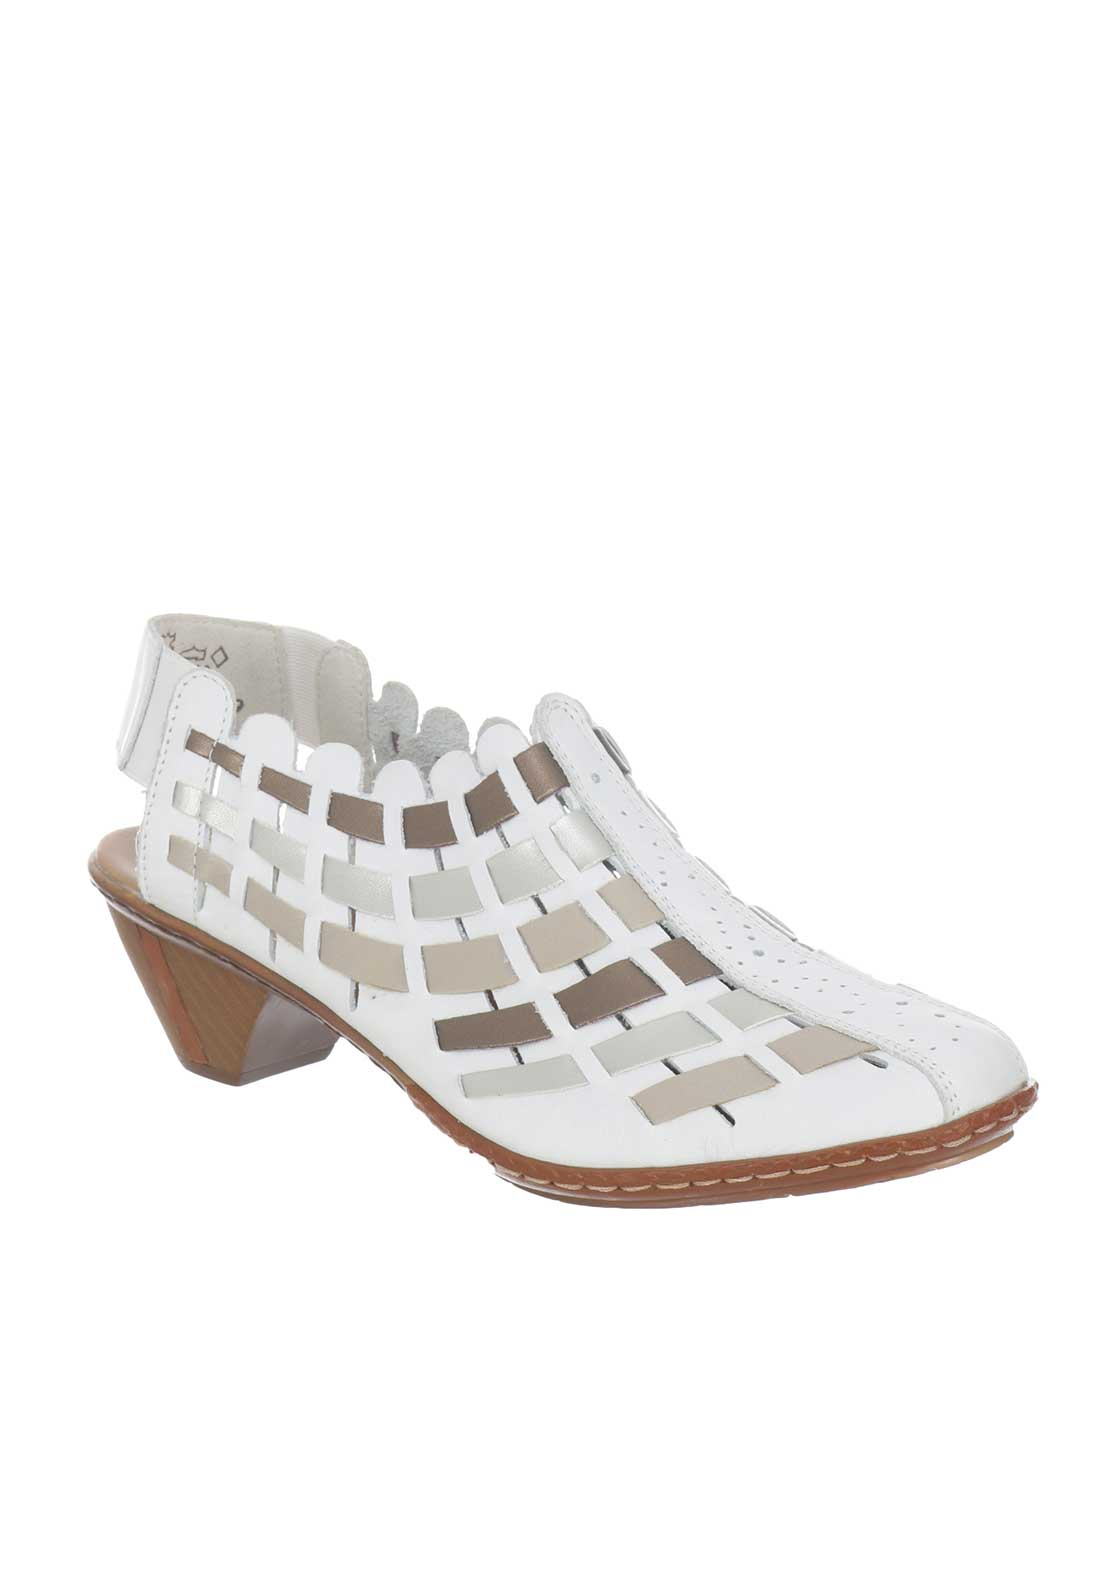 Rieker Womens Woven Leather Shoes, White